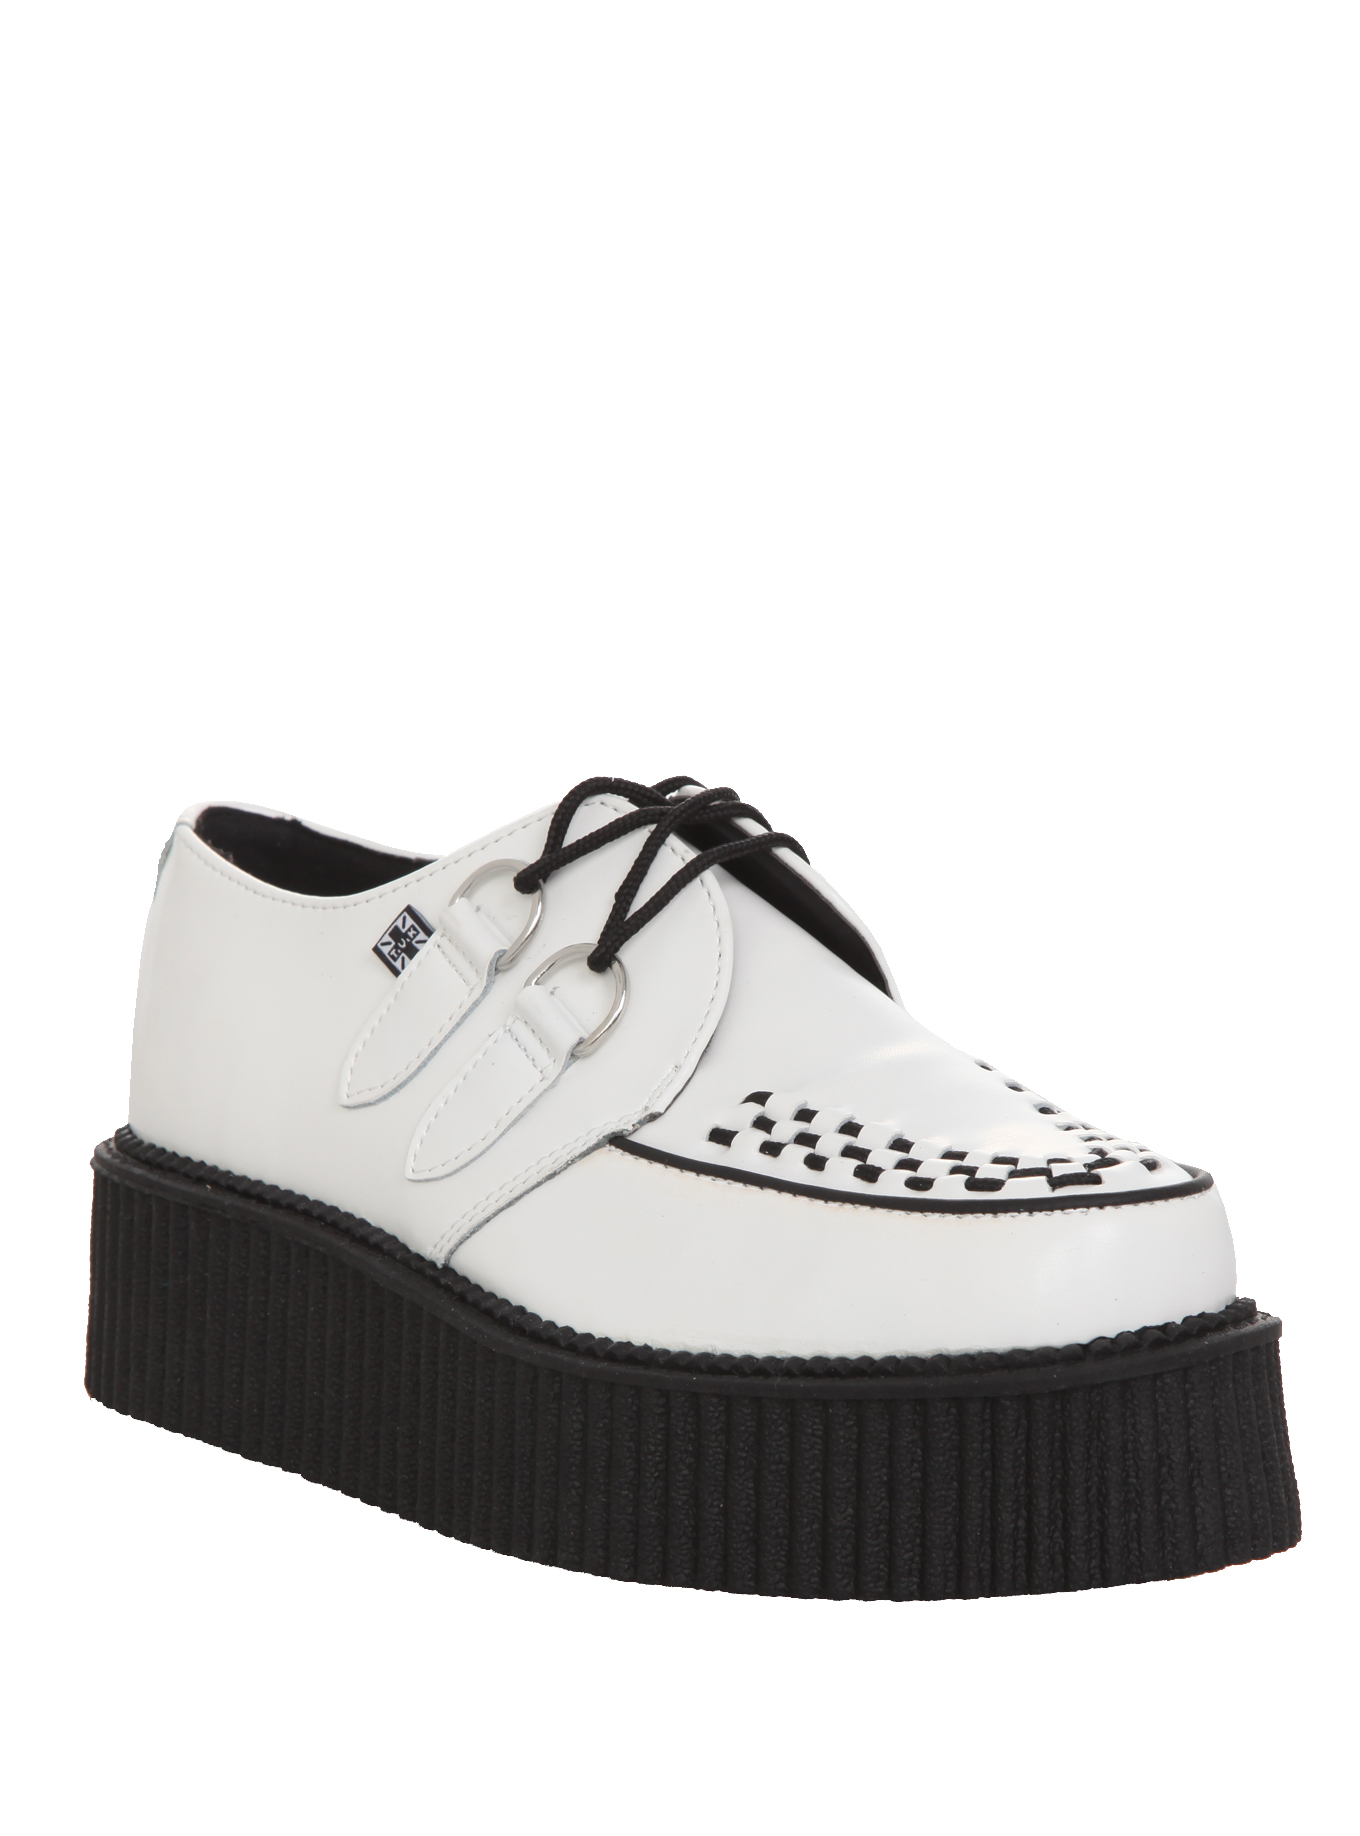 T.U.K. White Mondo Creepers | Hot Topic